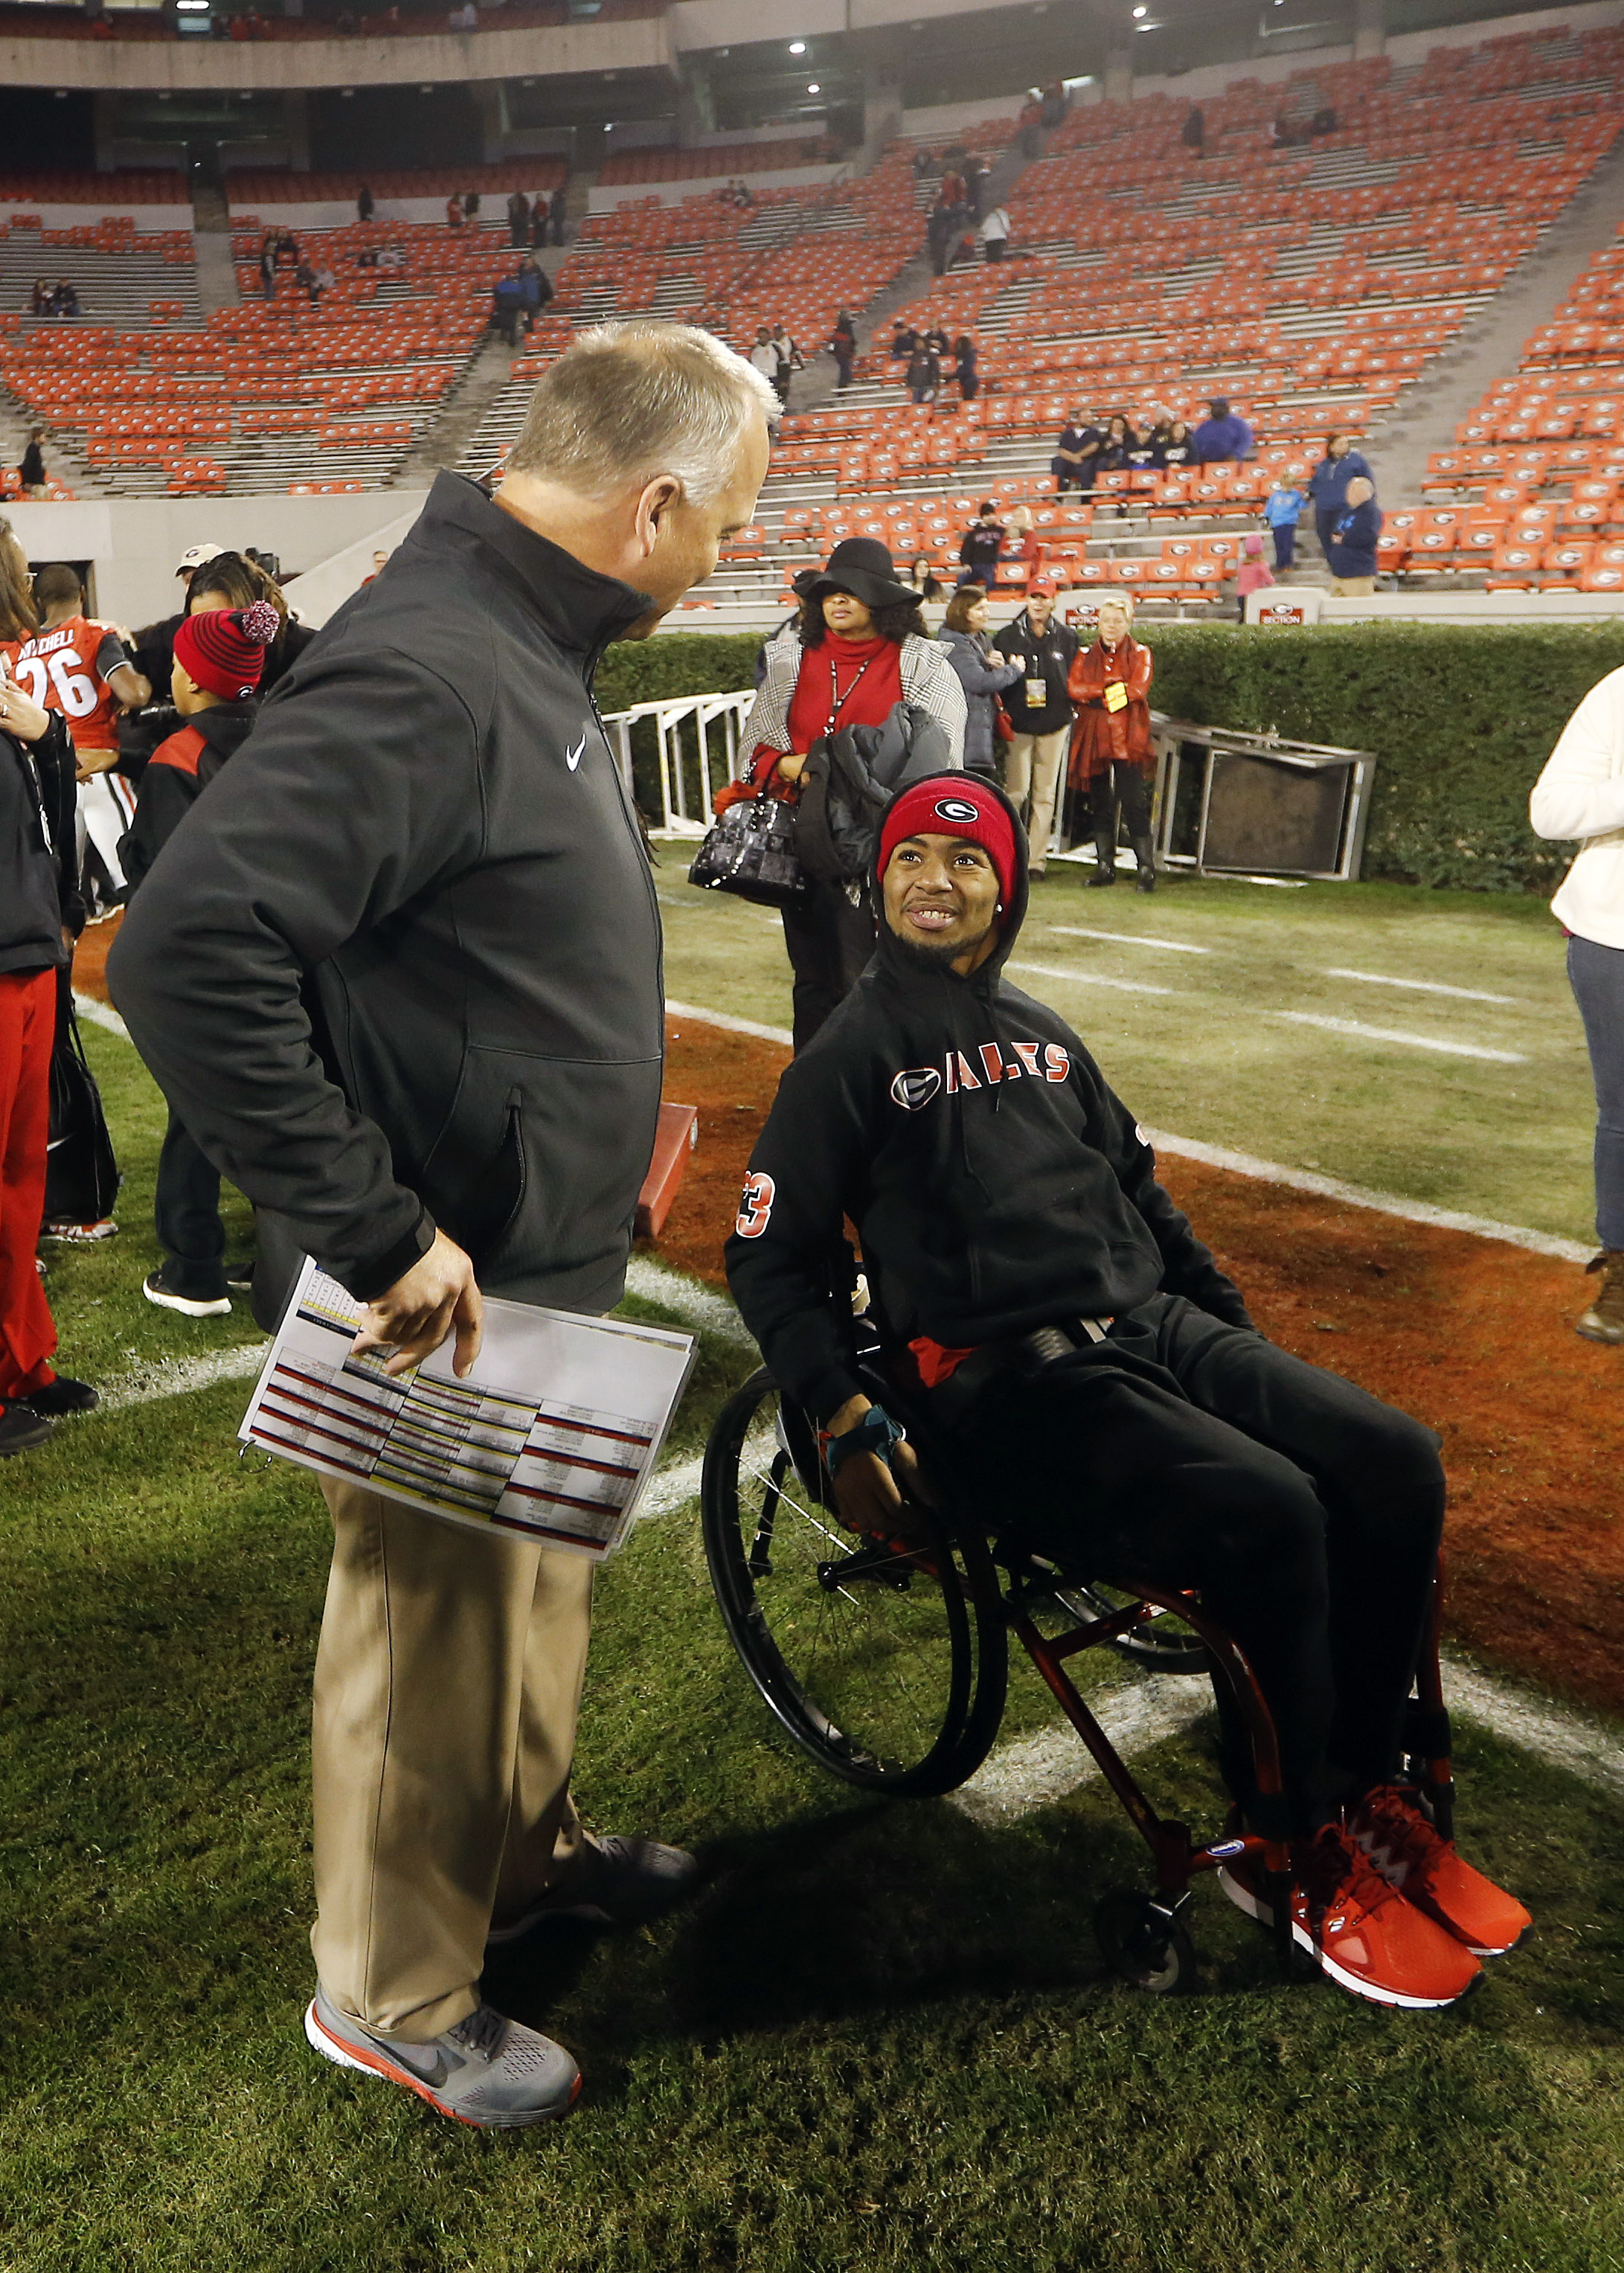 Injured Southern University receiver Devon Gales talks with Georgia head coach Mark Richt before an NCAA college football game between Georgia and Georgia Southern on Saturday, Nov. 21, 2015, in Athens, Ga. Gales was paralyzed Sept. 26, 2015 while blockin